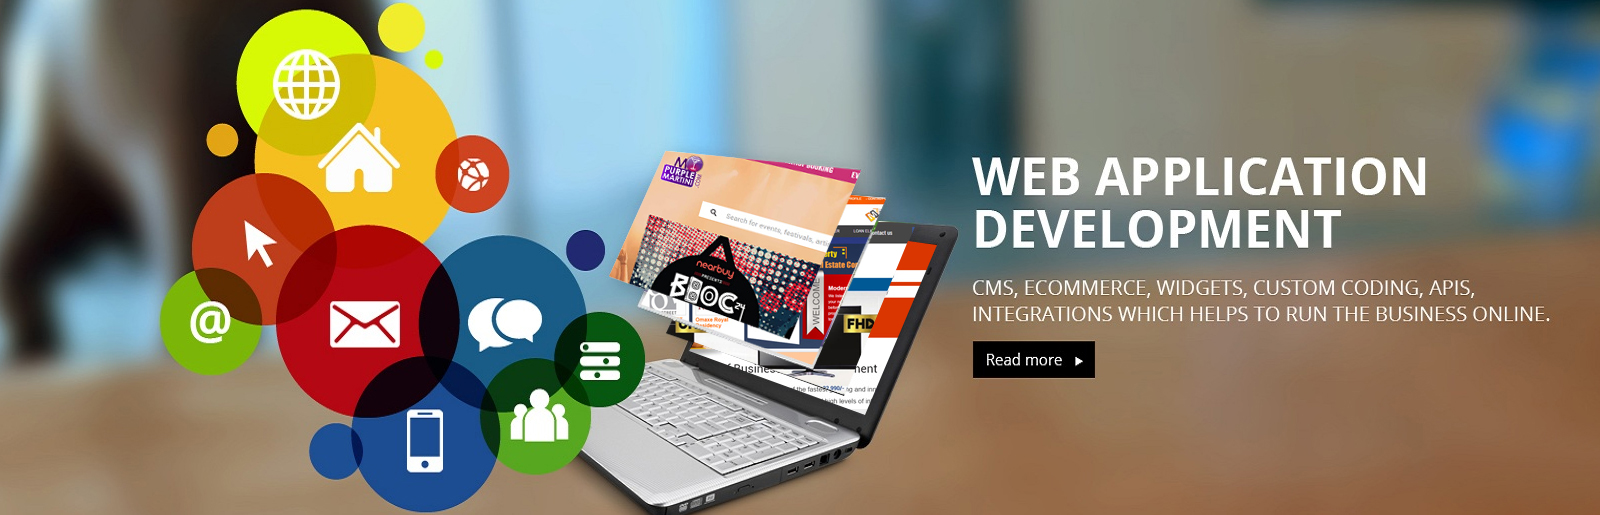 Top Website Designing, Development and Seo Company in Delhi - India